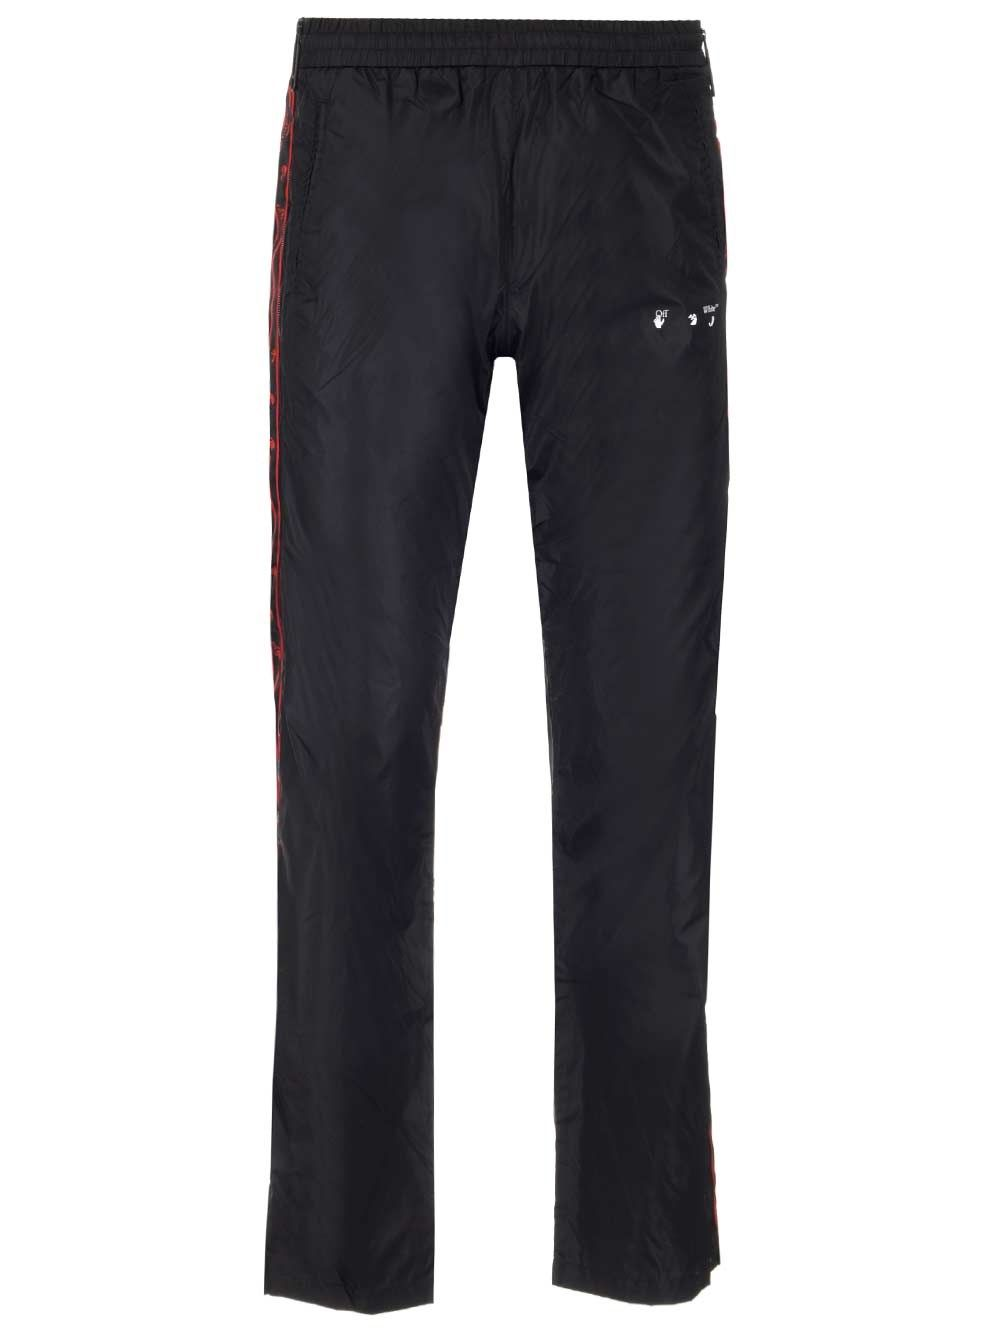 Off-White Linings OFF-WHITE MEN'S BLACK OTHER MATERIALS PANTS